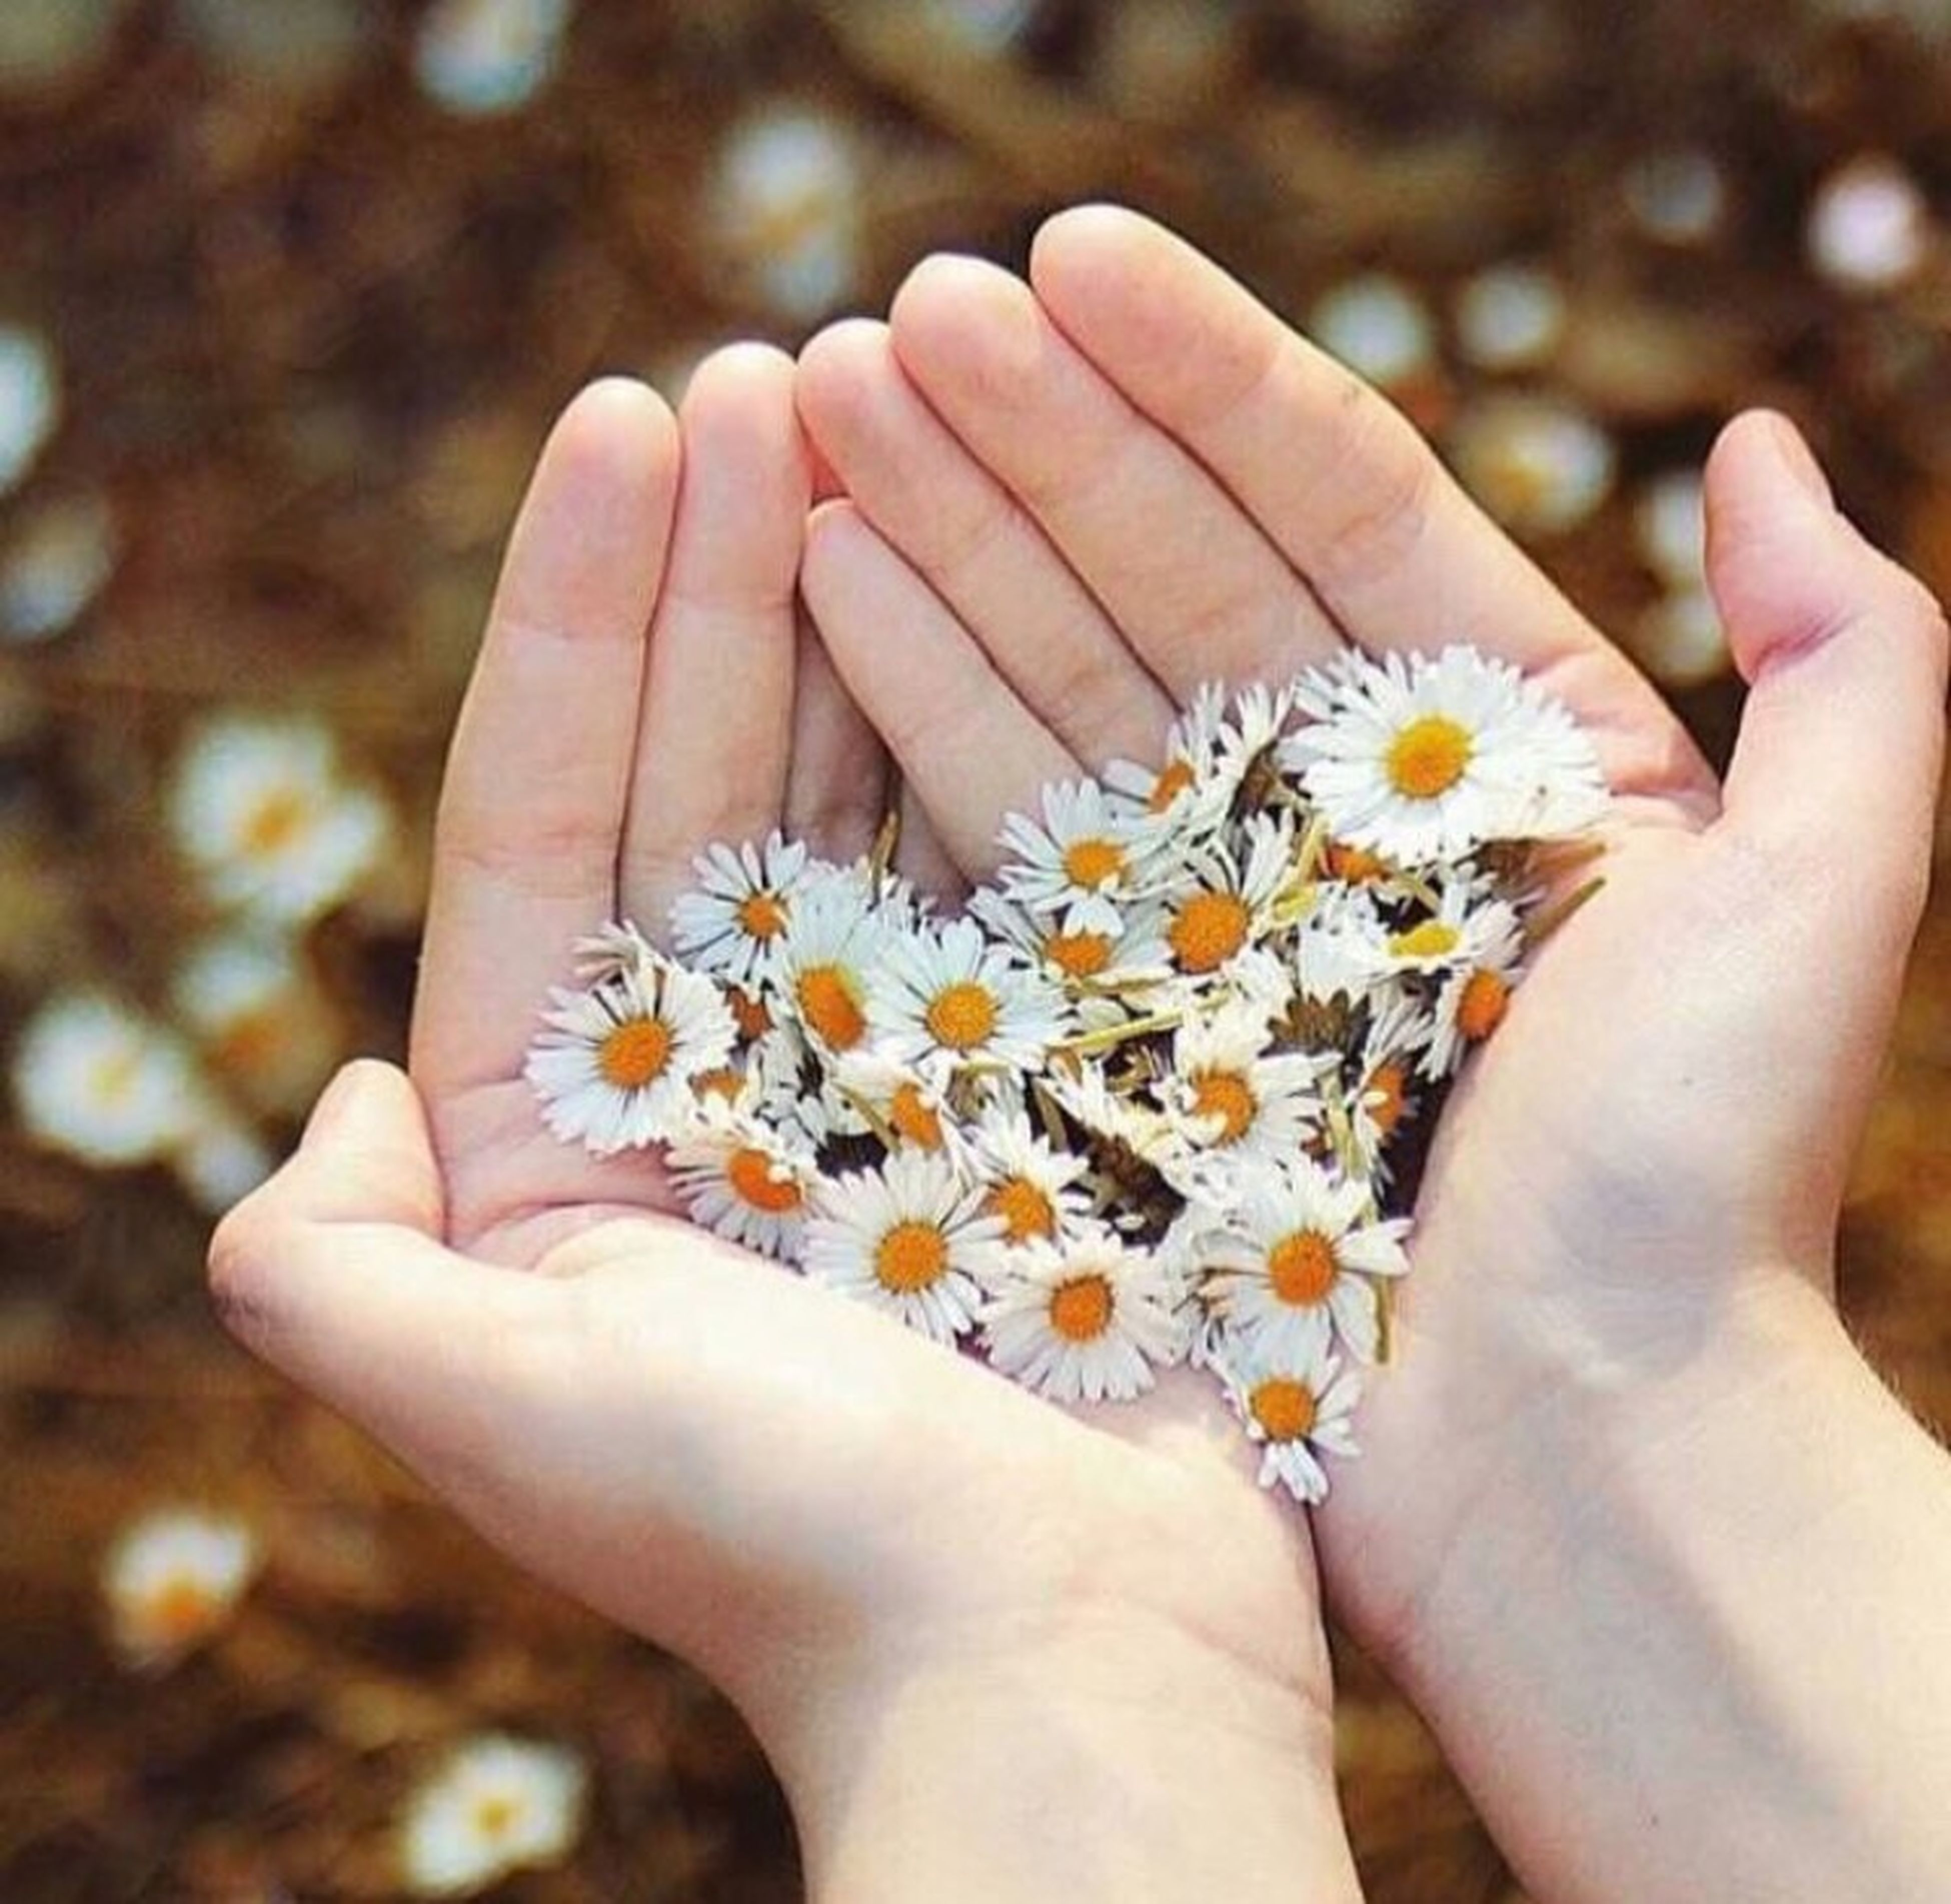 person, flower, holding, personal perspective, part of, petal, fragility, human finger, flower head, freshness, lifestyles, unrecognizable person, cropped, daisy, close-up, leisure activity